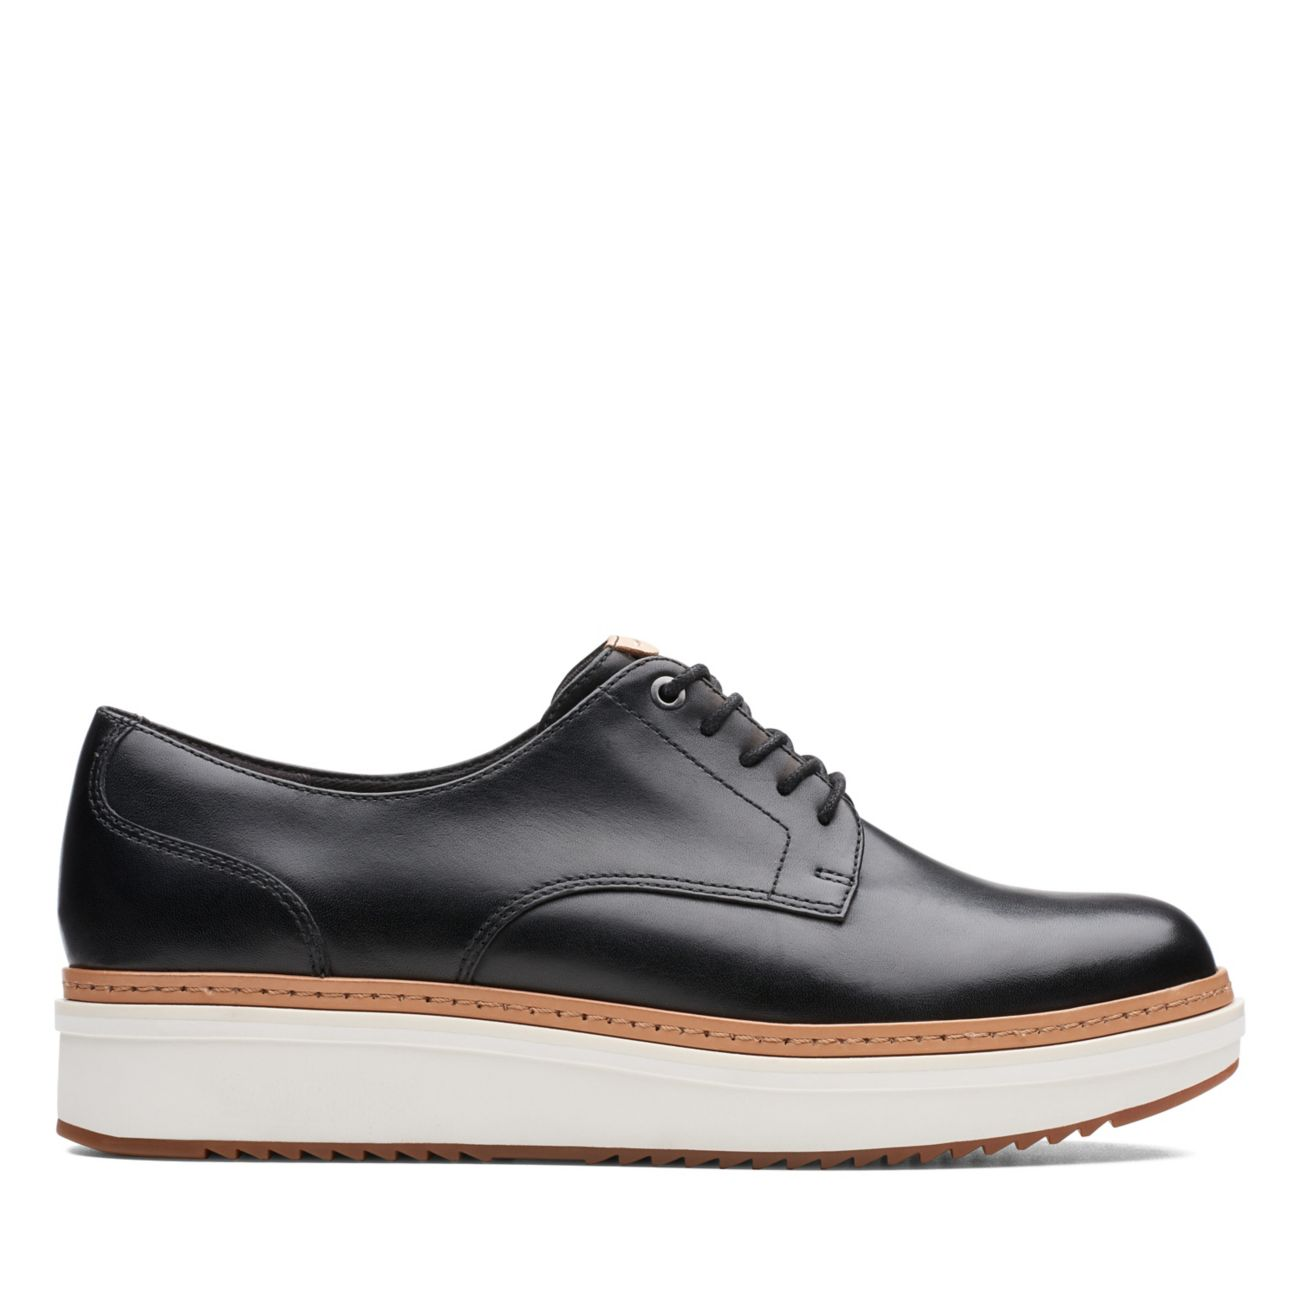 404886f0f36109 Teadale Rhea Black Smooth-Womens shoes - Clarks® Shoes Official Site |  Clarks